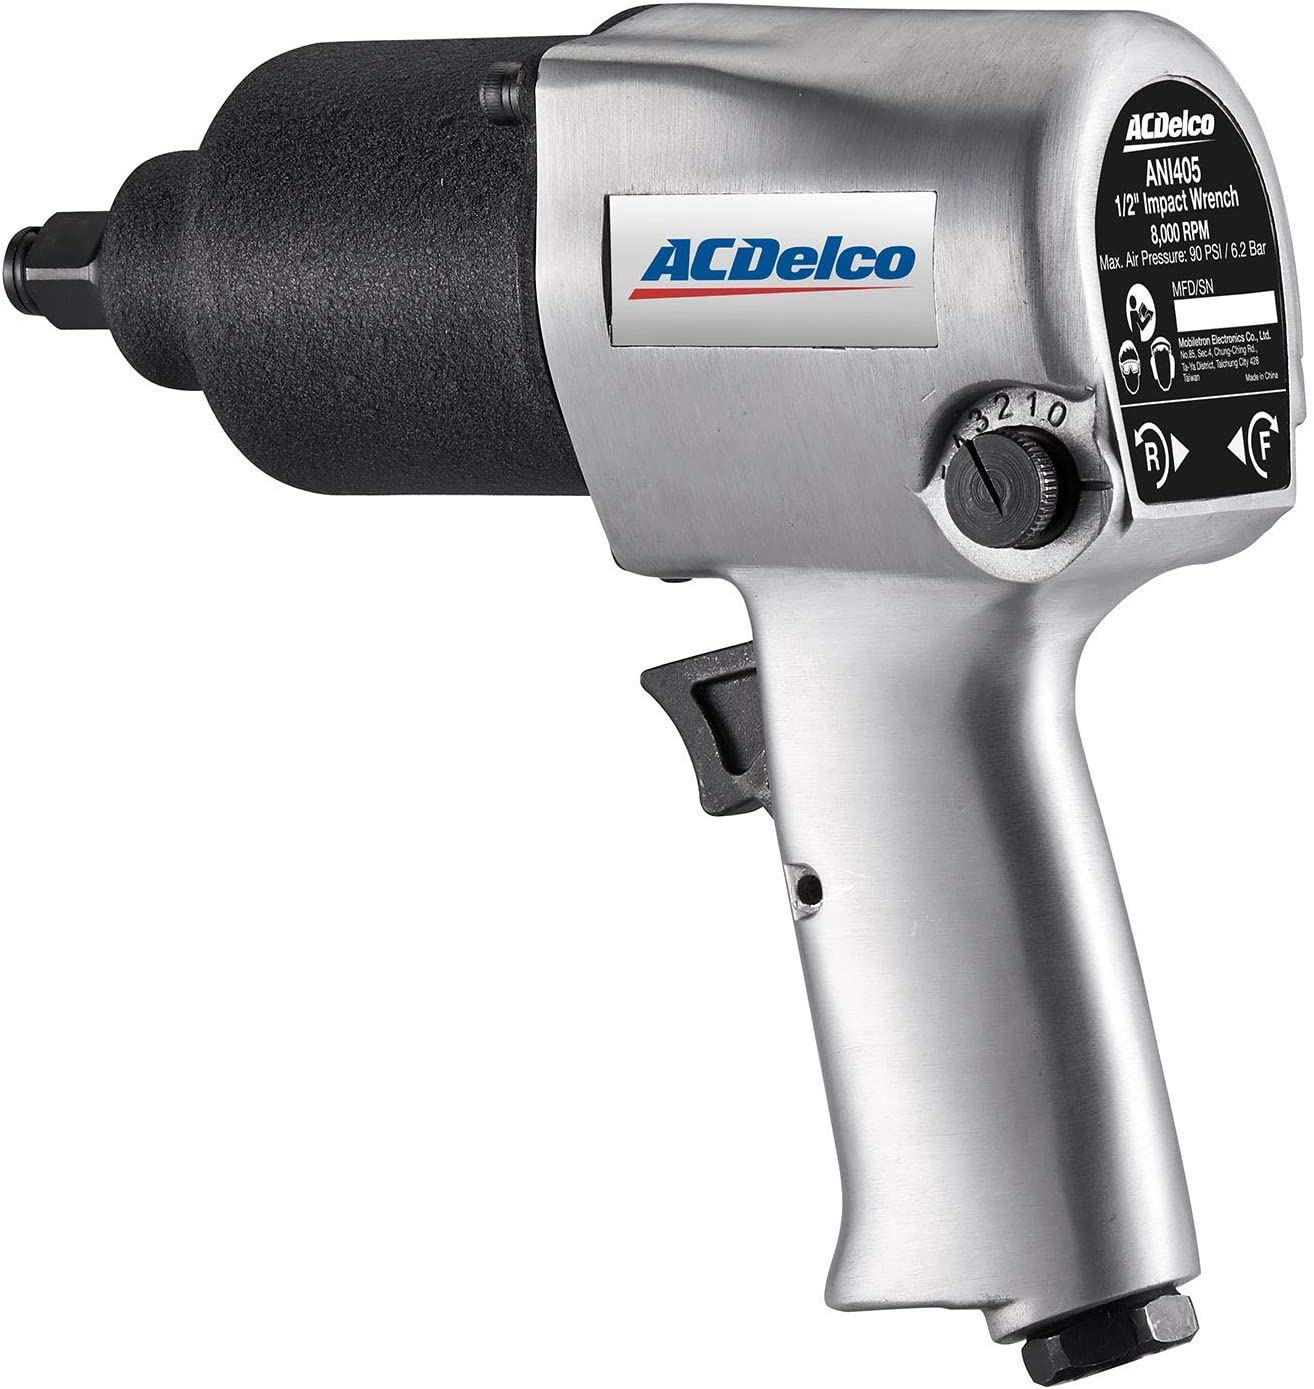 ACDelco ANI405 Heavy Duty Twin Hammer 1 2 Air Impact Wrench Pneumatic Tools